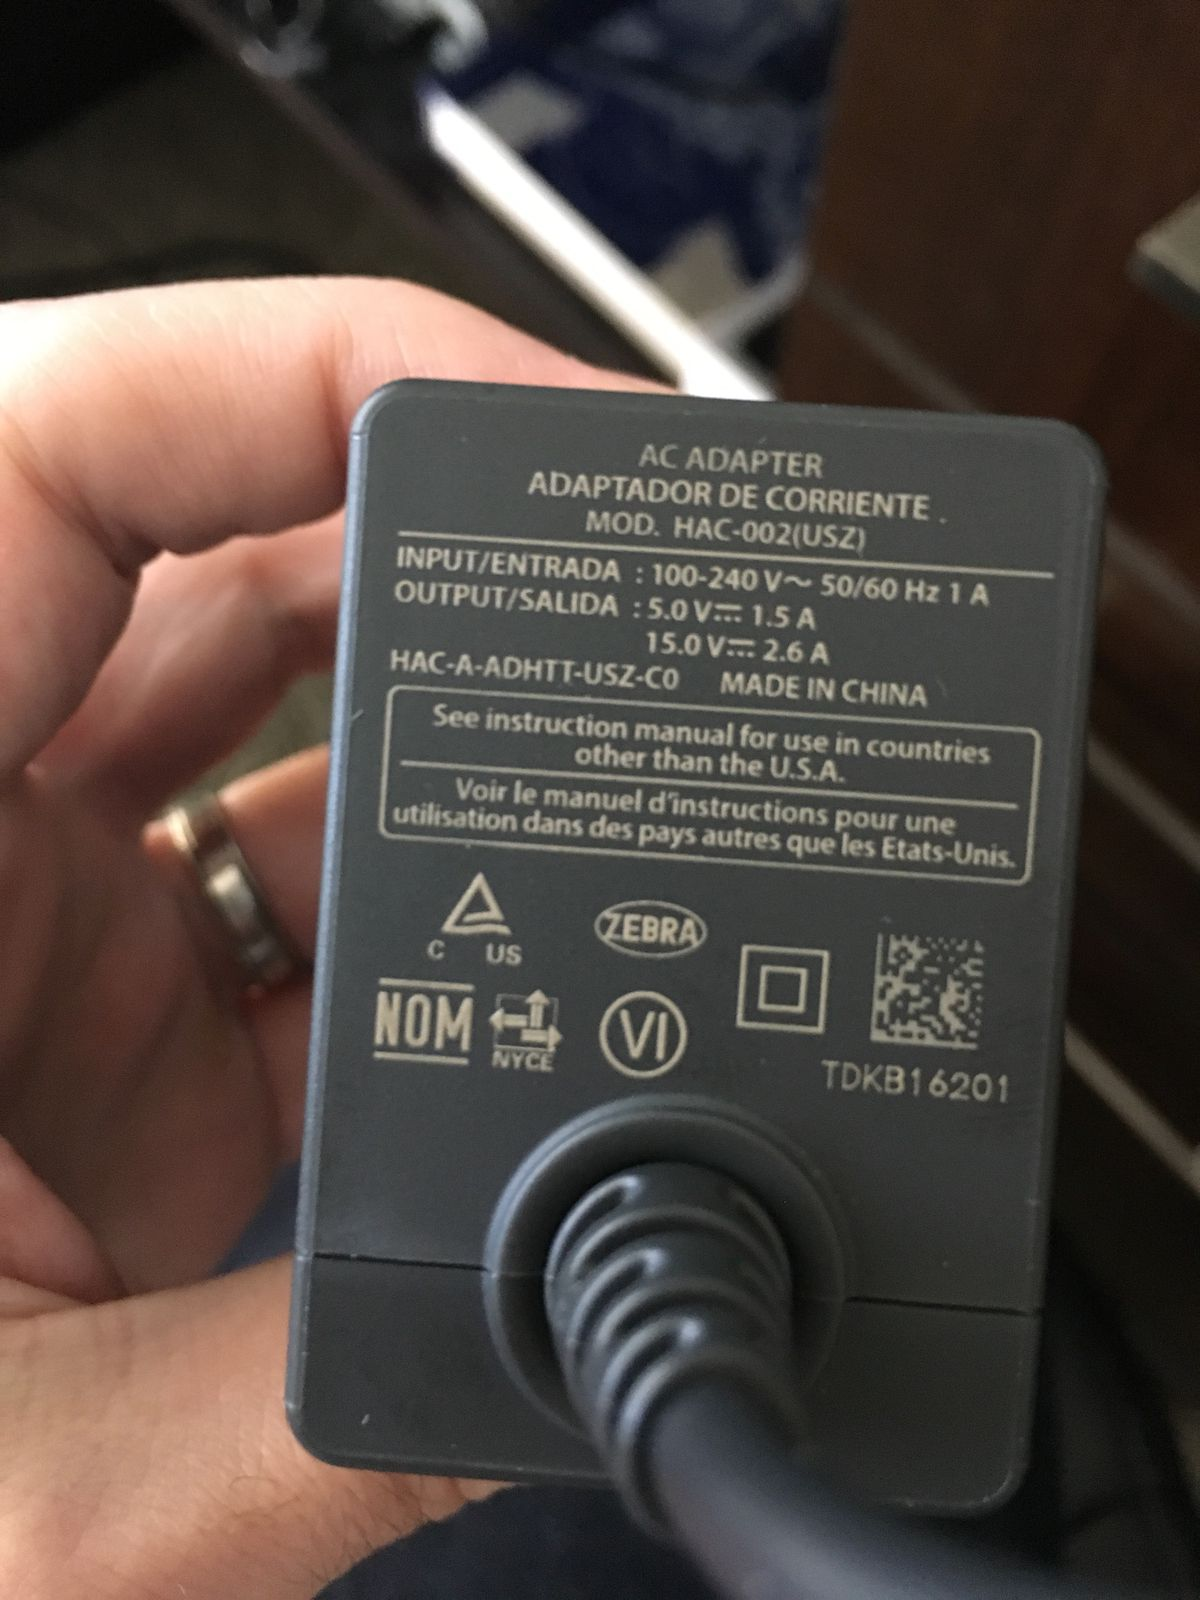 The nintendo switch battery pack situation is more complicated than as we can see the switch actually outputs two power at two different level 50v15a and 150v26a which works out to 75w and 39w respectively publicscrutiny Images